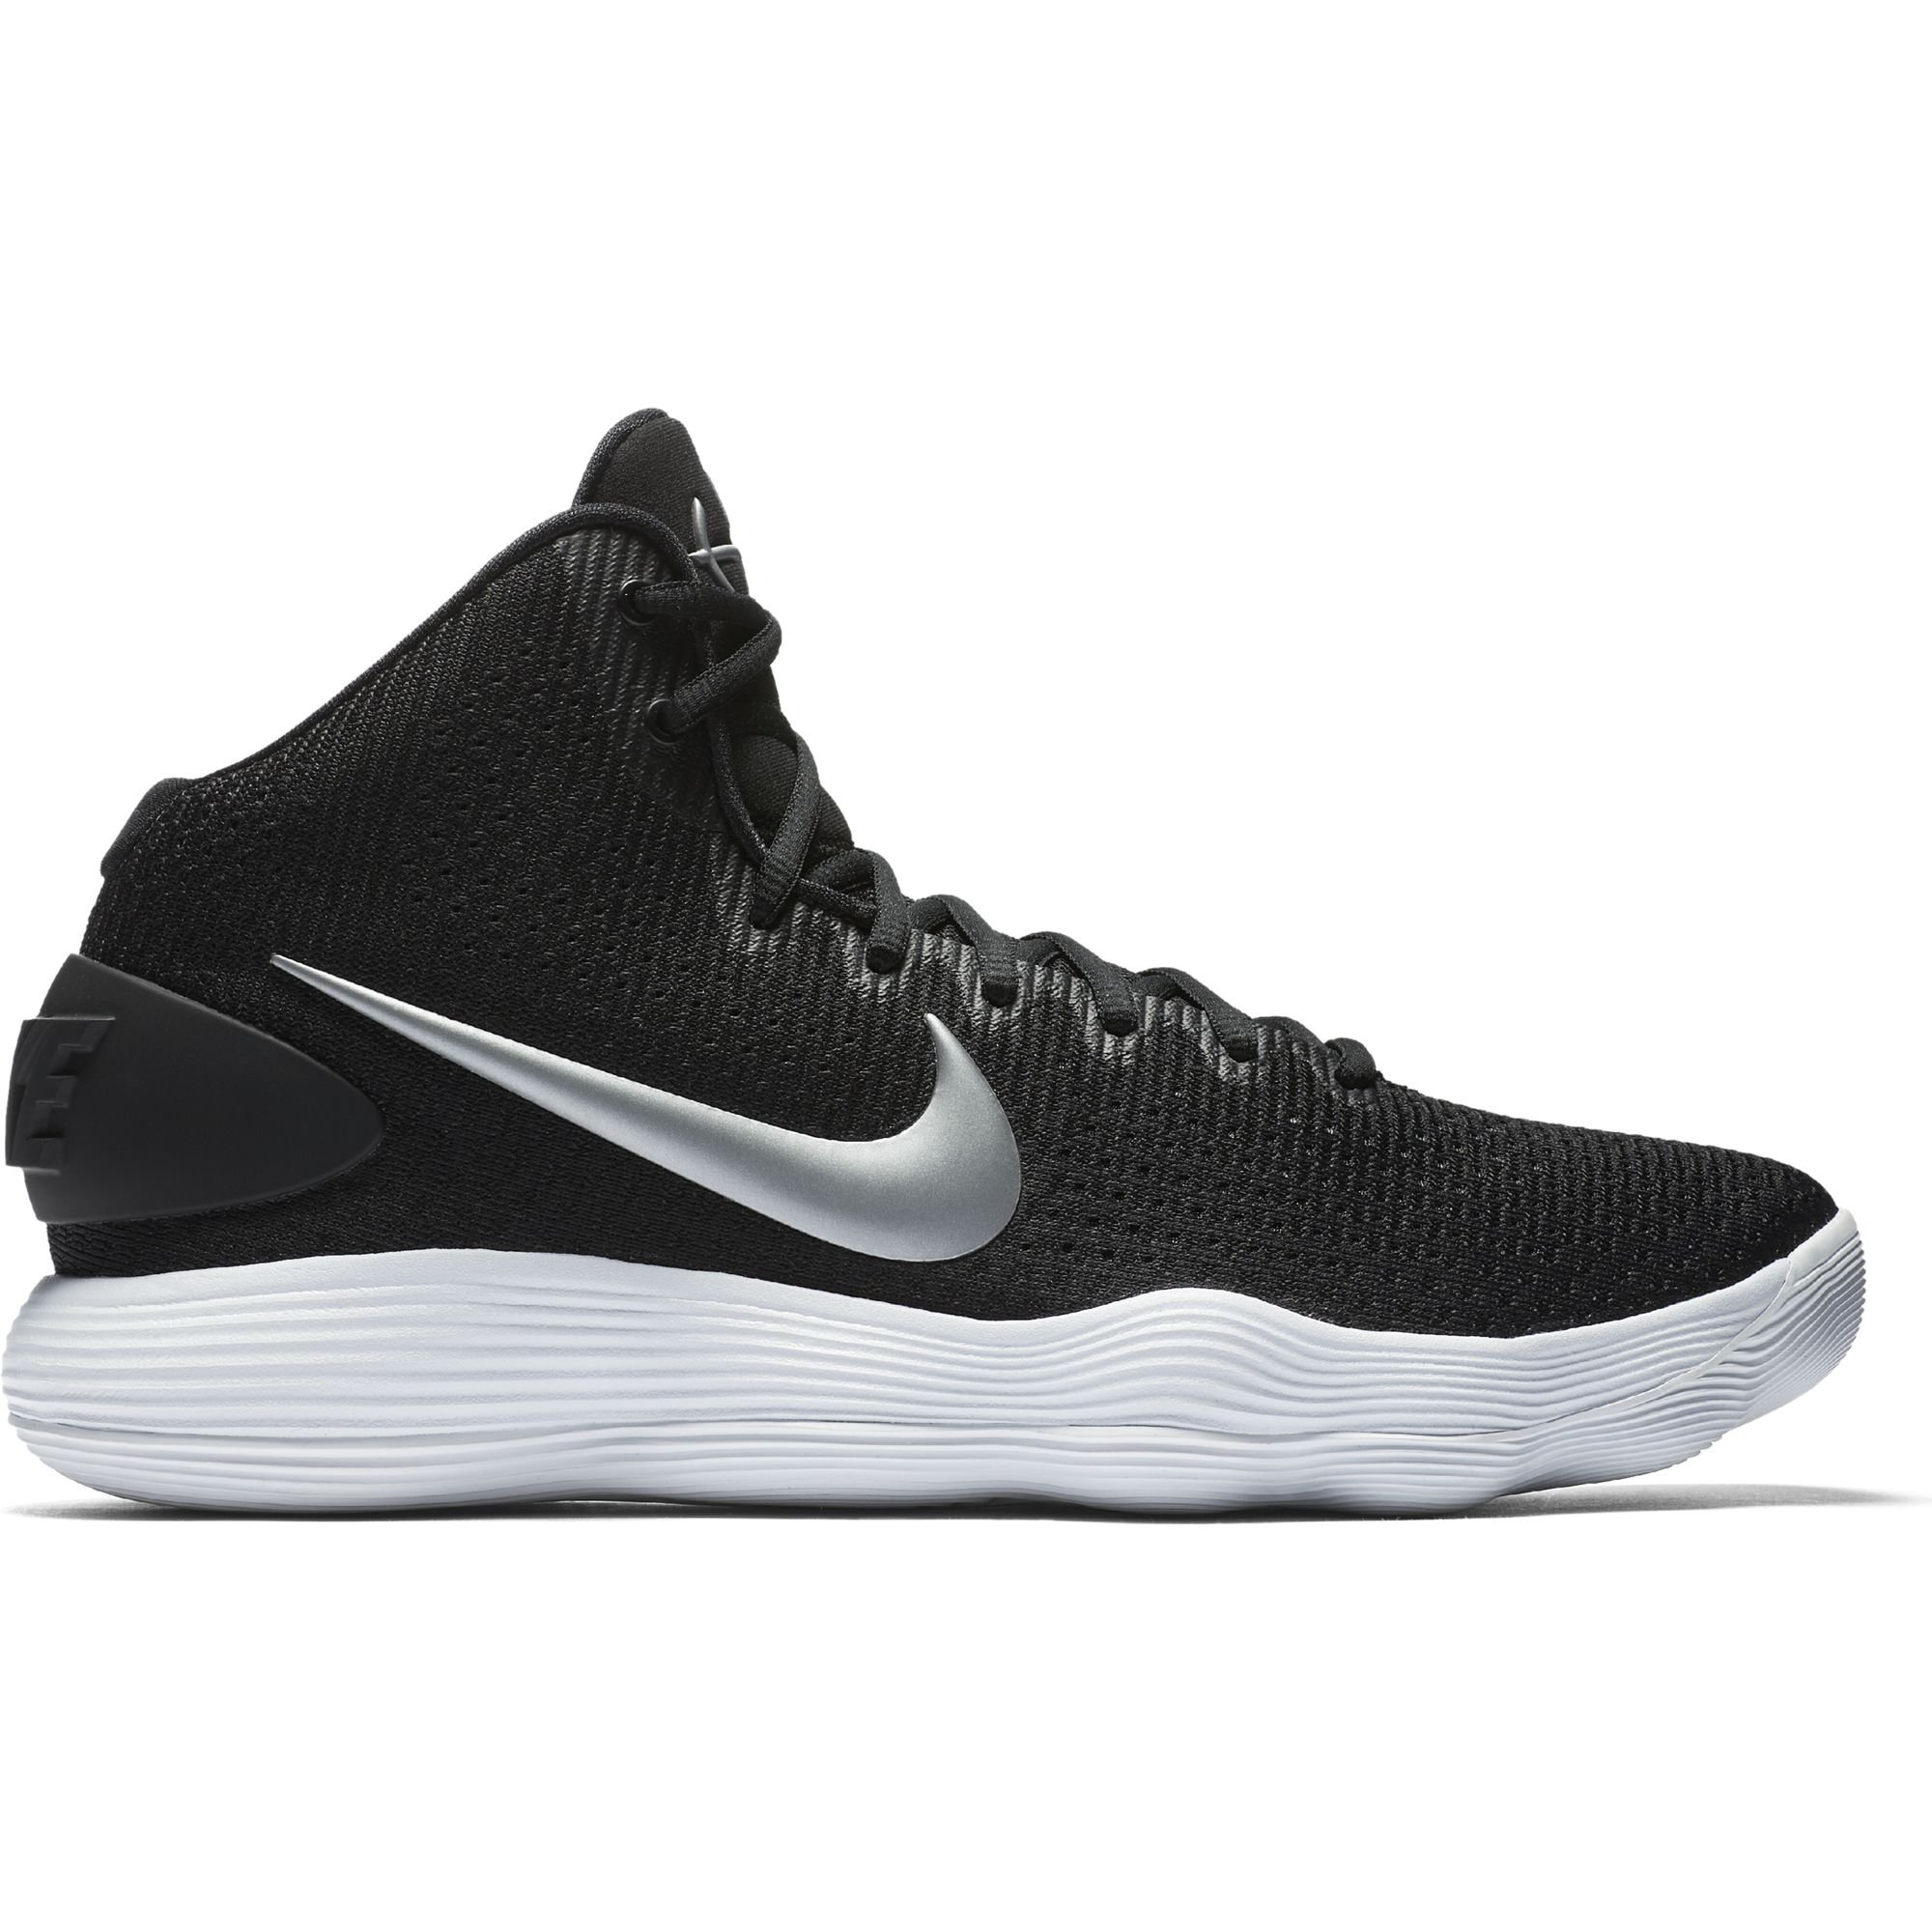 NIKE Men's Hyperdunk 2017 TB Basketball Shoe Black/Metallic Silver/White Size 10.5 M US by Nike